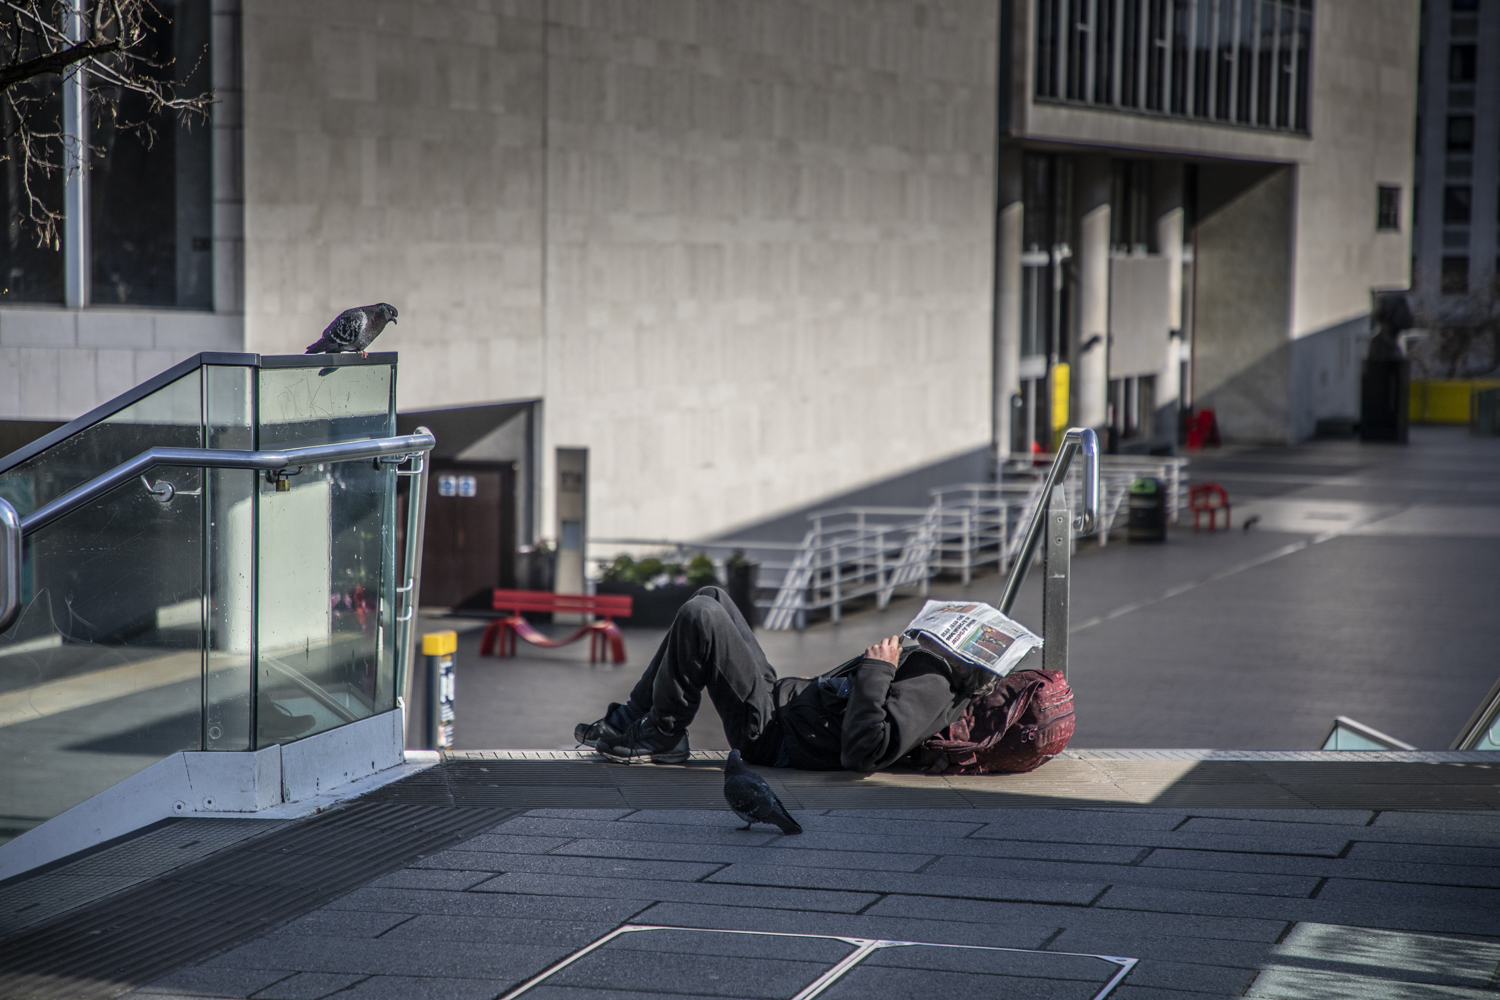 COVID 19 London lockdown. Homelessness - a homeless man lies sleelping on the floor at the Southbank. Image ©Jason Florio